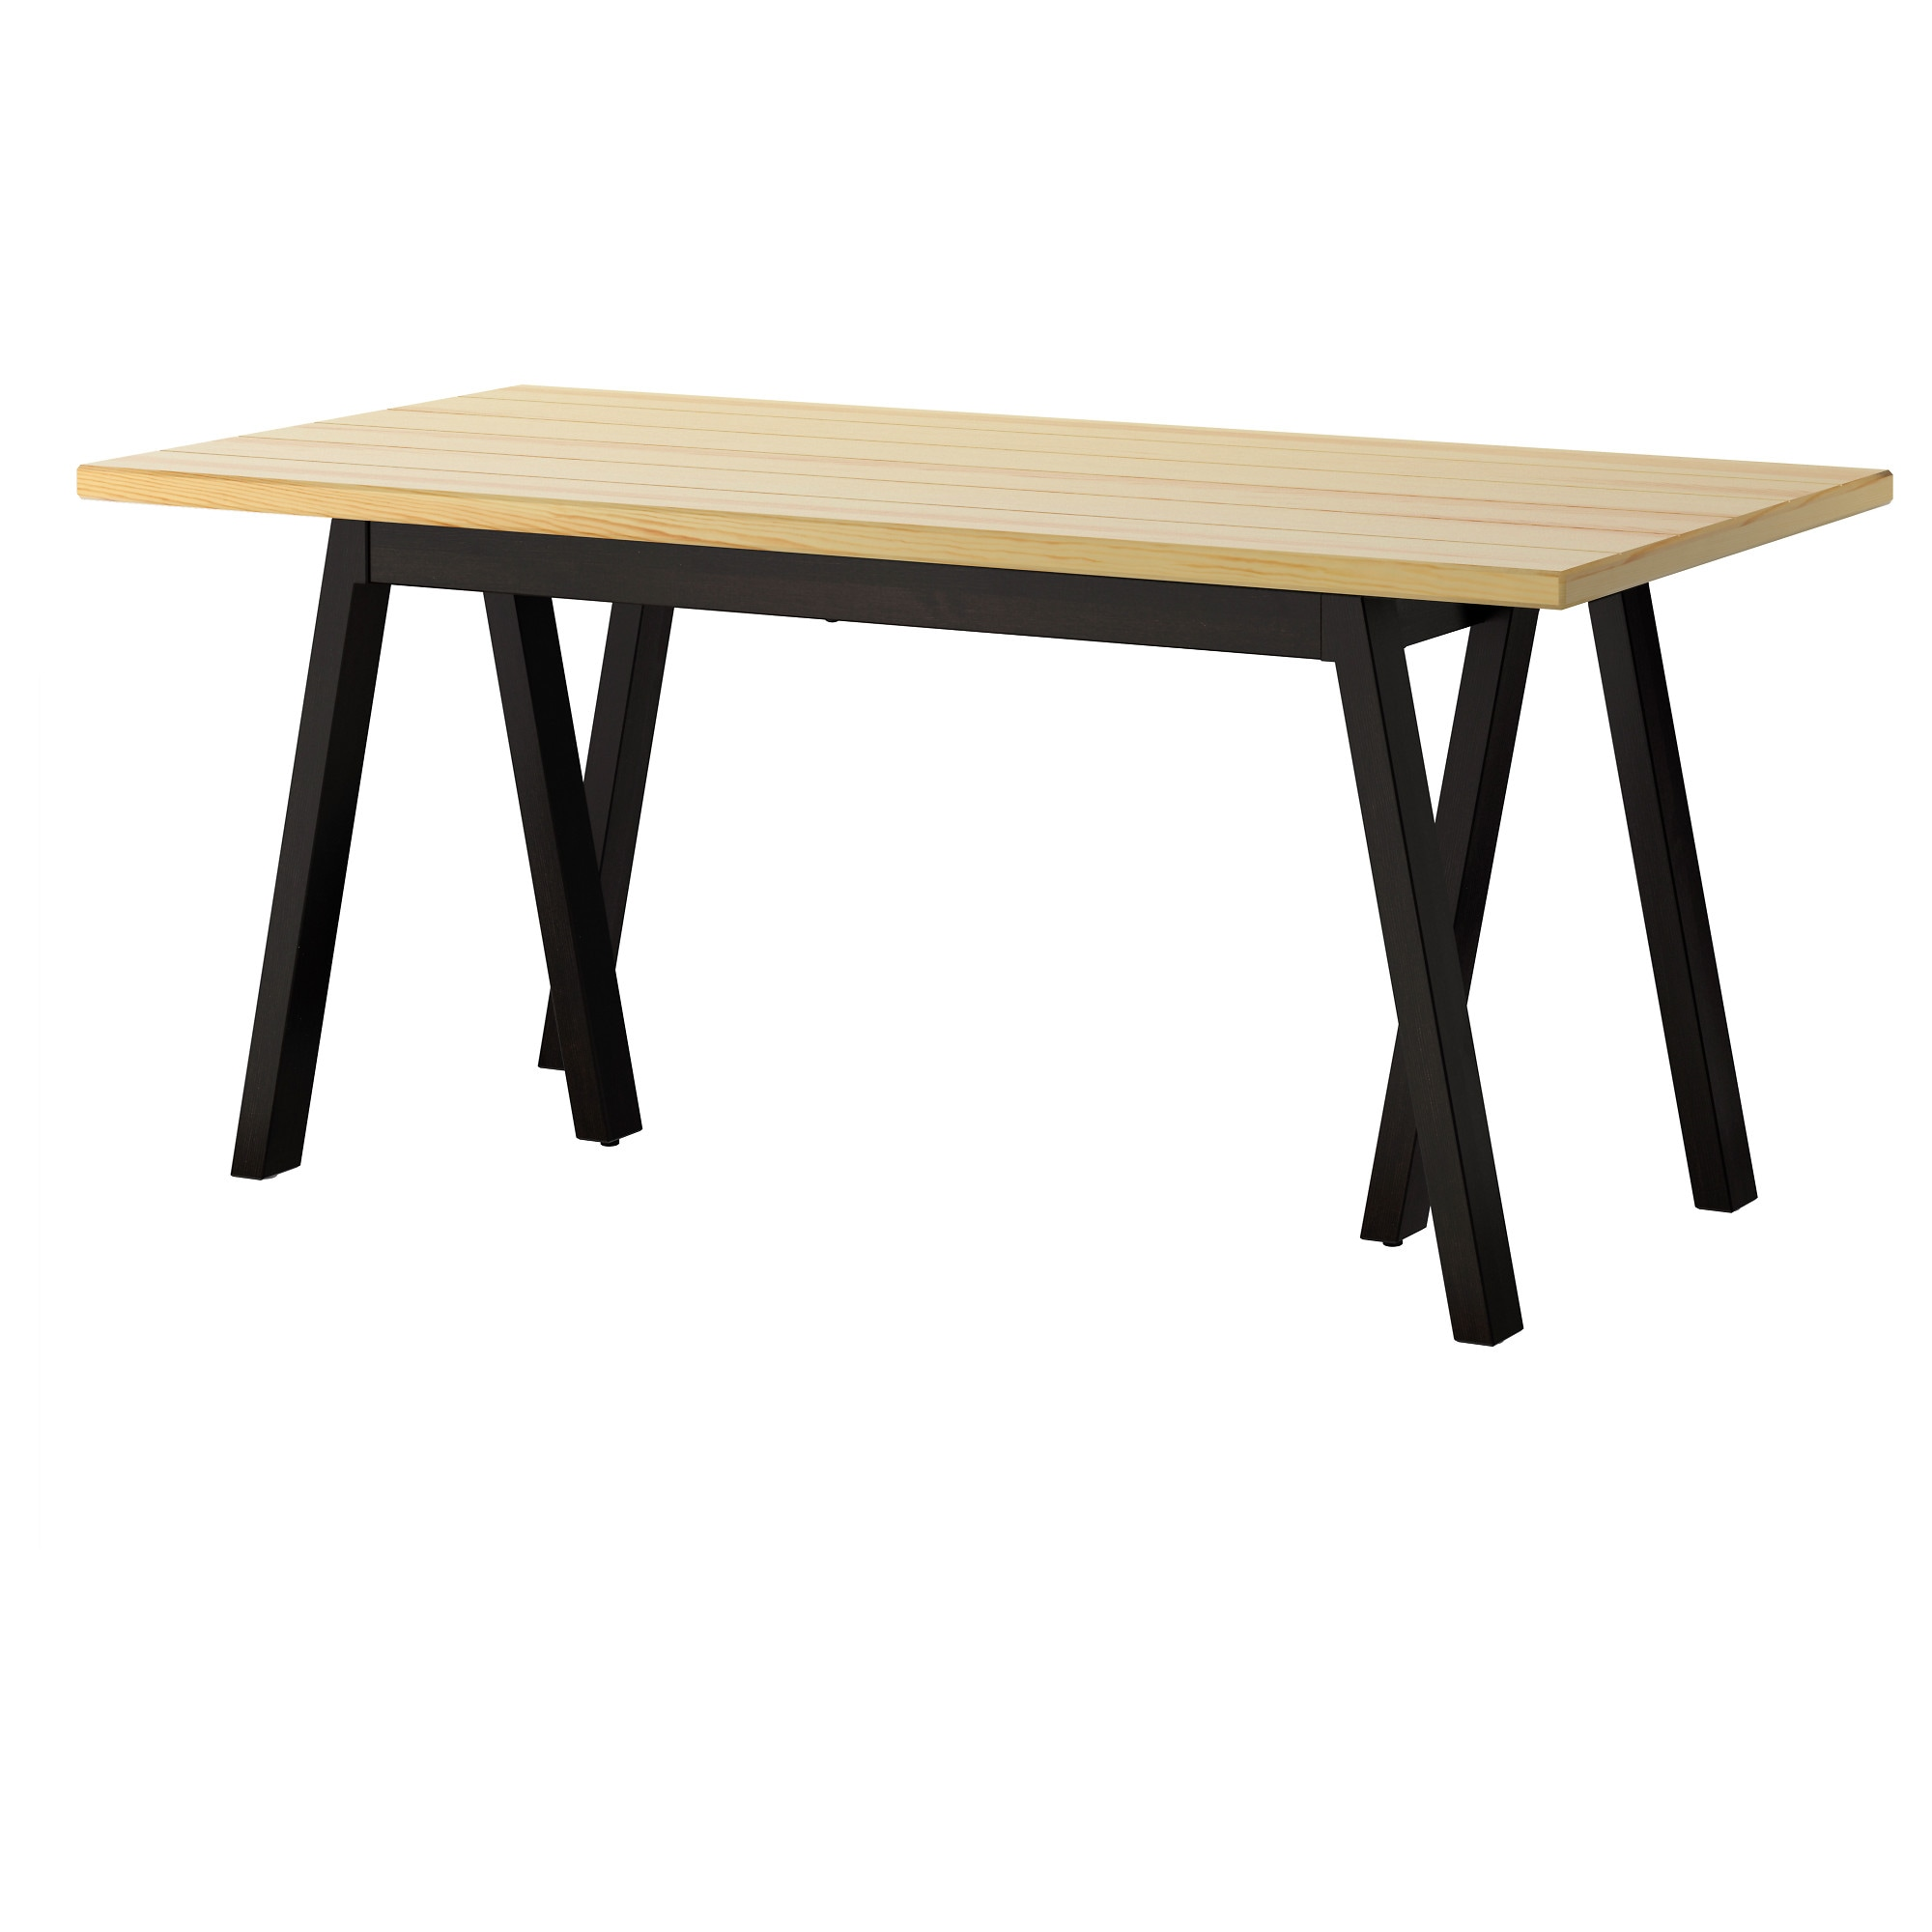 Table ronde noire ikea acheter en ligne table ronde for Table ronde ikea